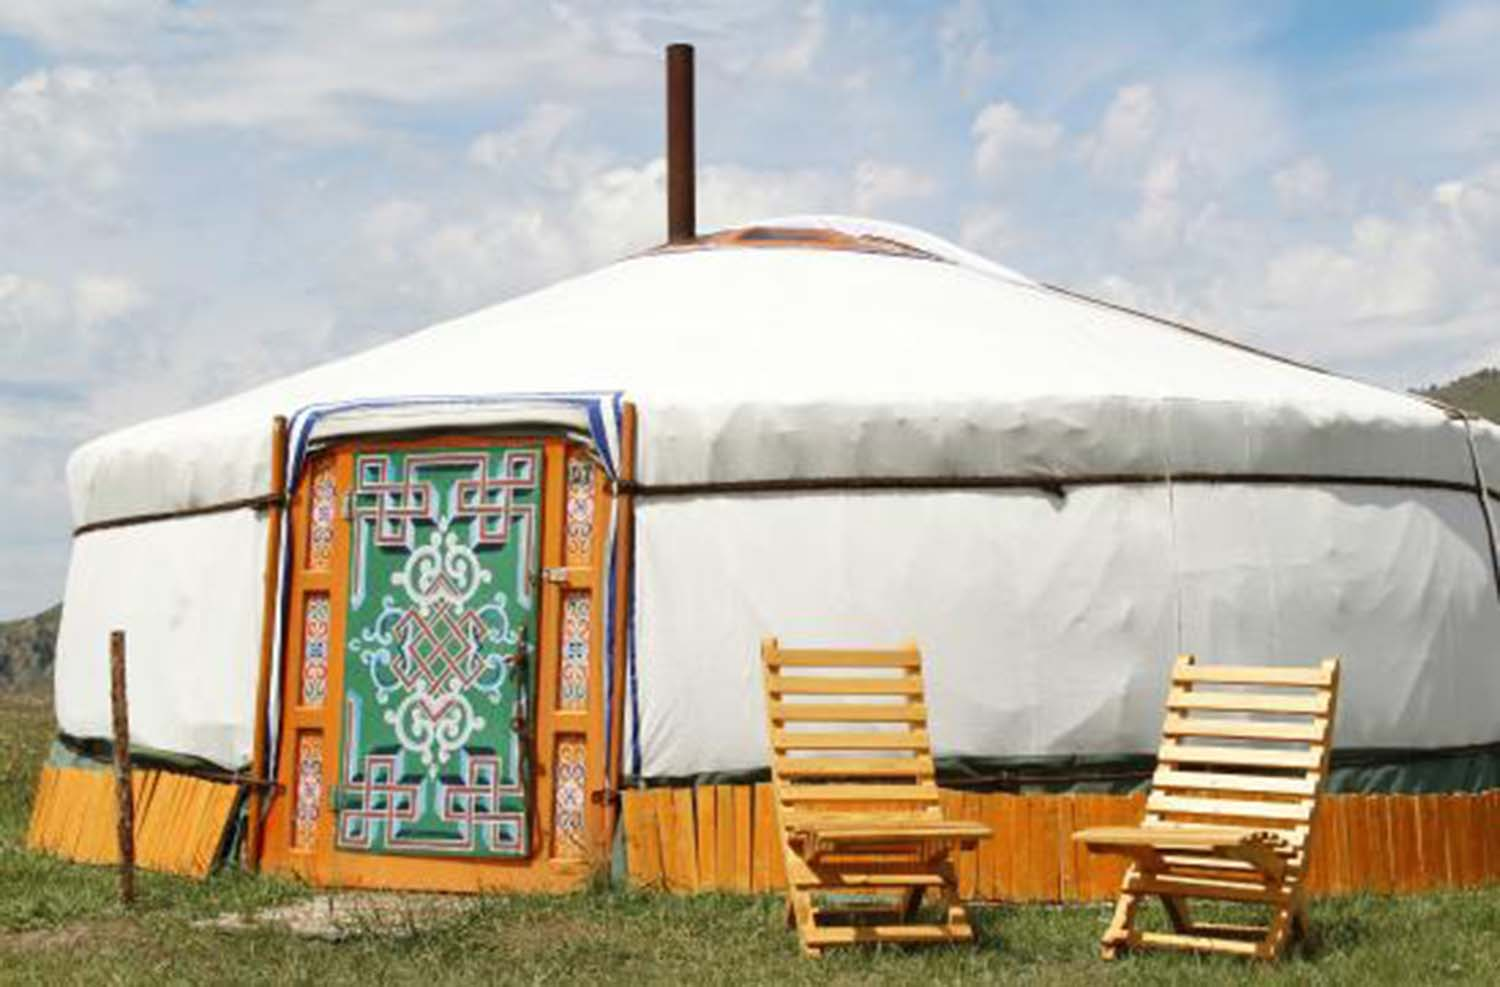 Stay in a Private Ger Camp